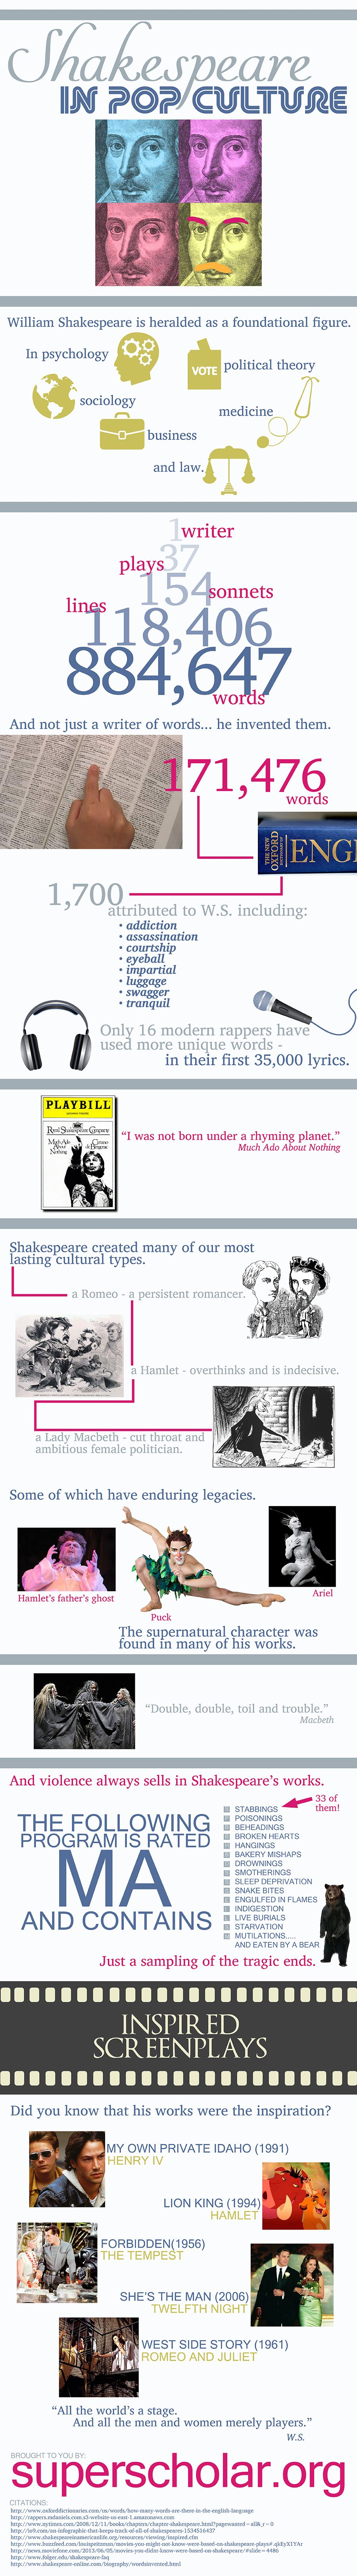 Shakespeare in Pop Culture